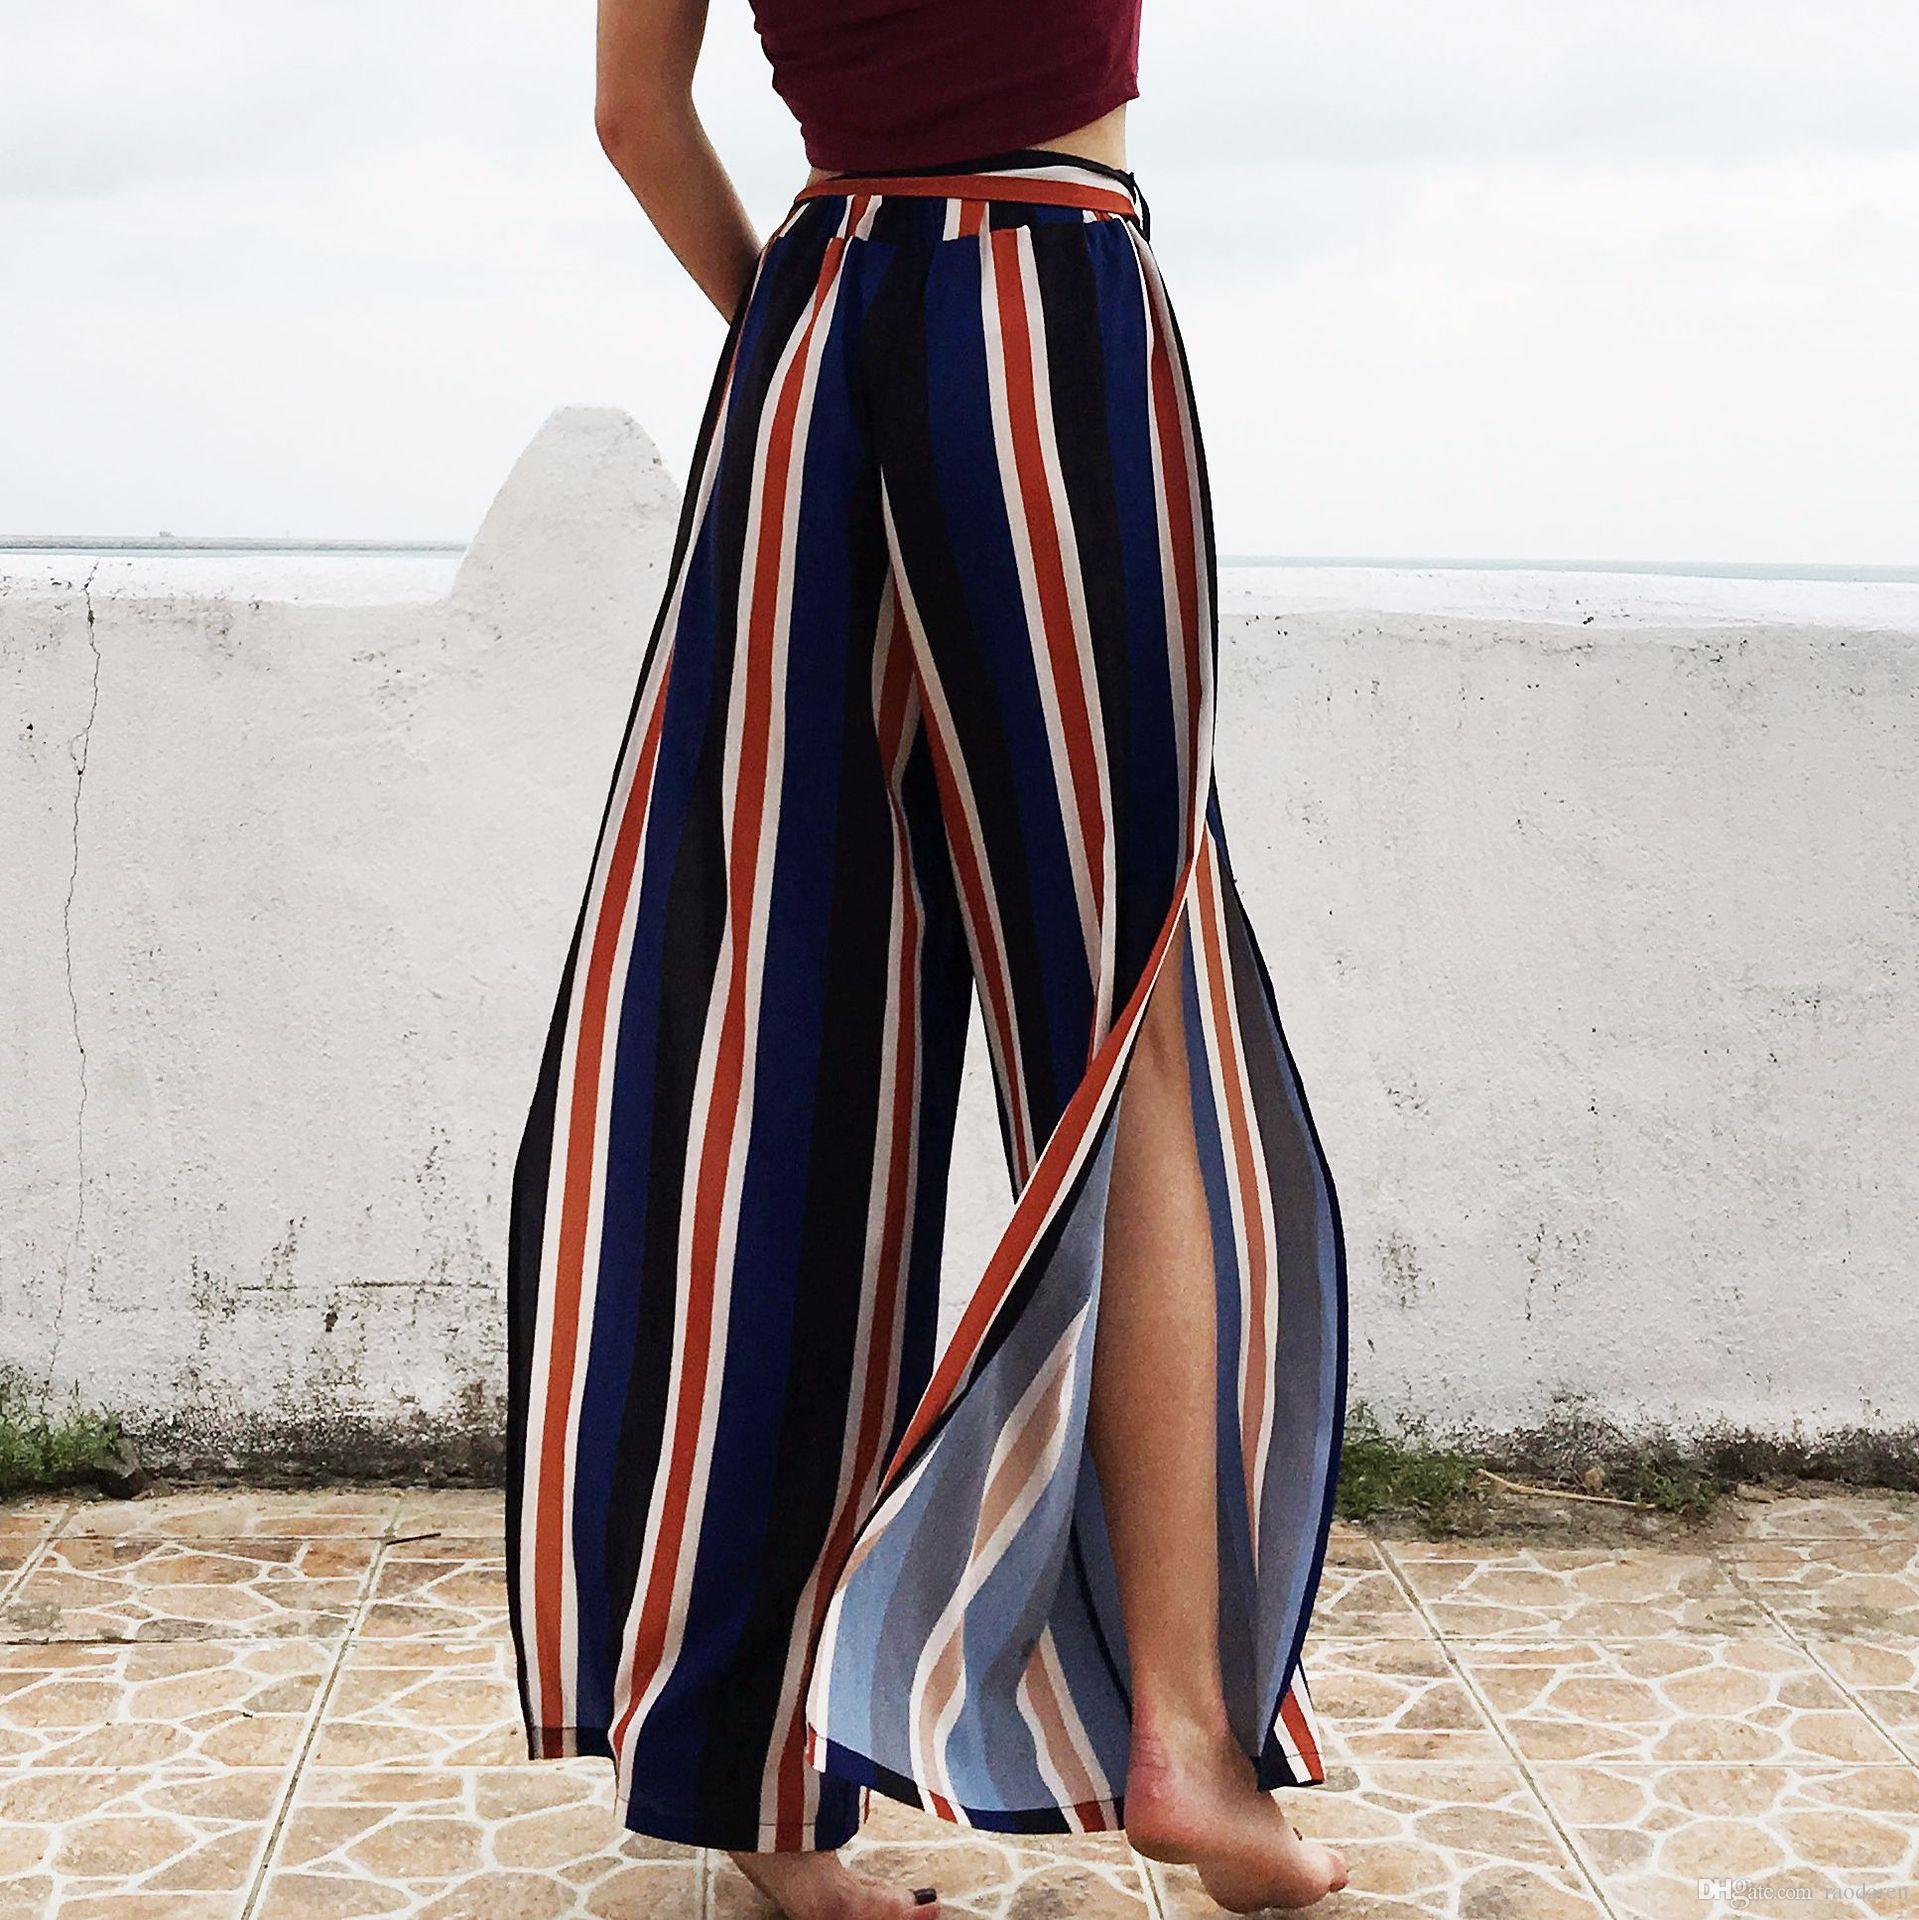 2019 Women Pants Summer 2018 Harem Casual Chiffon Trousers Striped Spilt  Wide Leg Holiday Party Sex Clothing From Raodaren, $12.68 | DHgate.Com